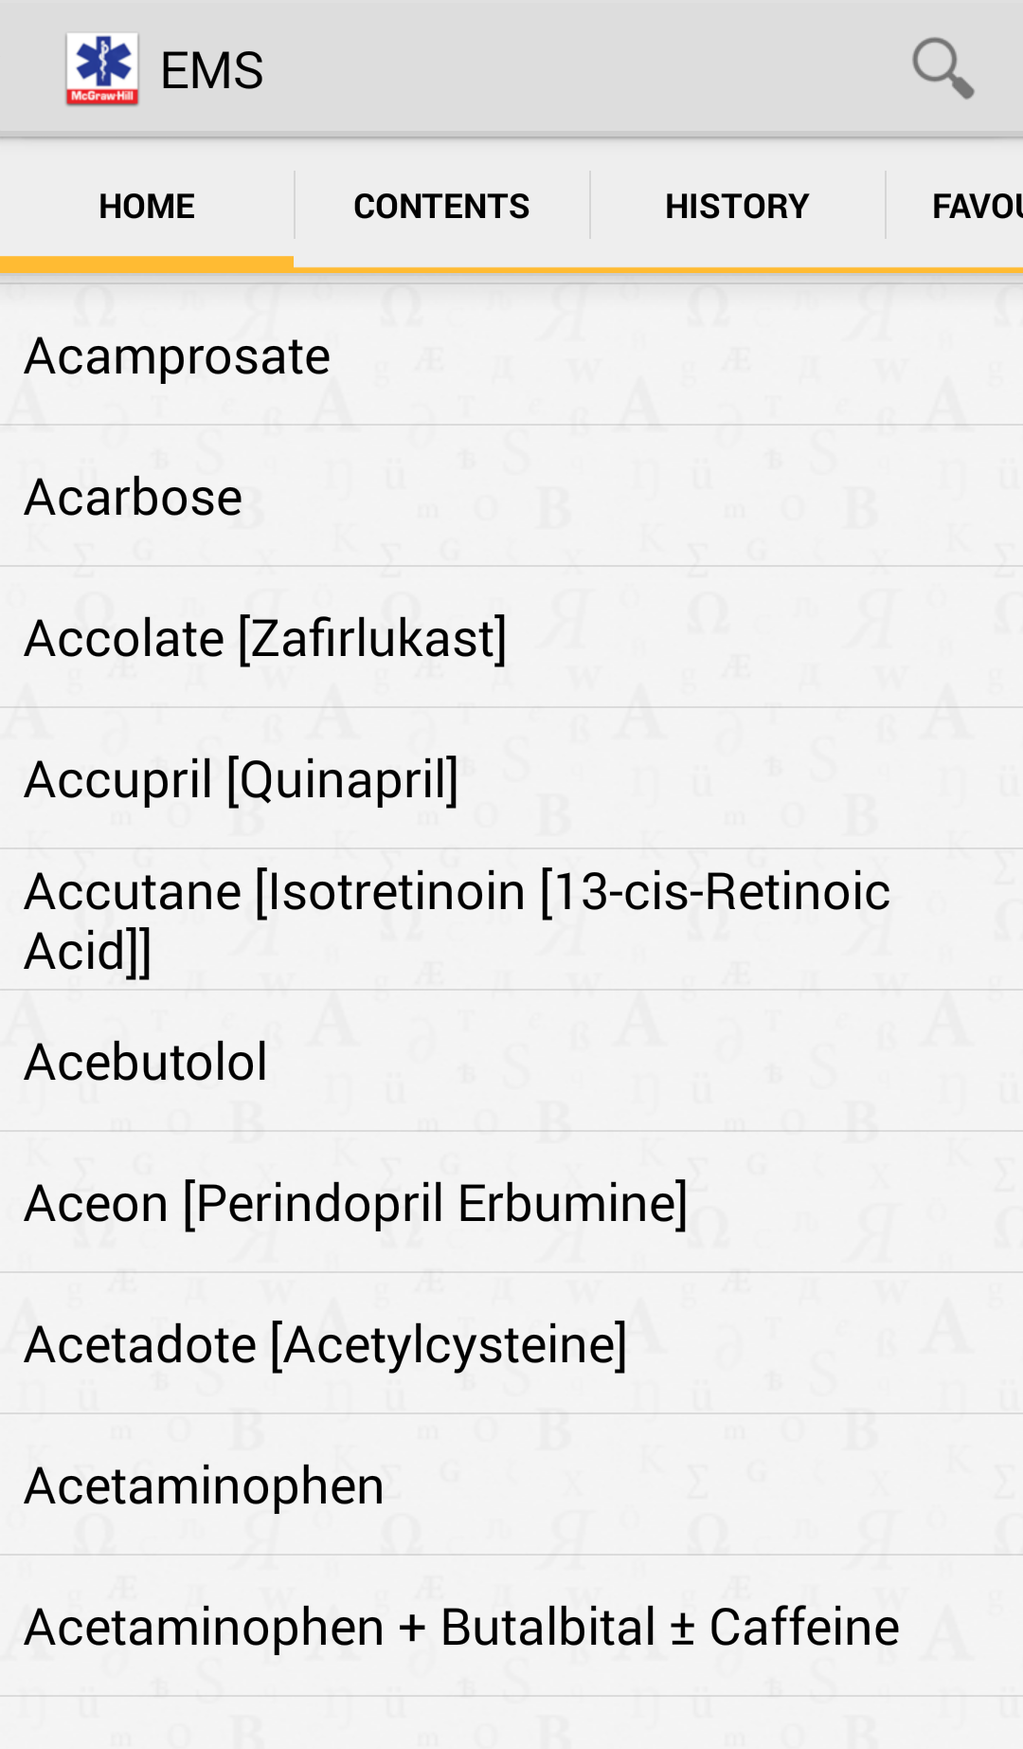 EMS Pocket Drug Guide Screenshot 2